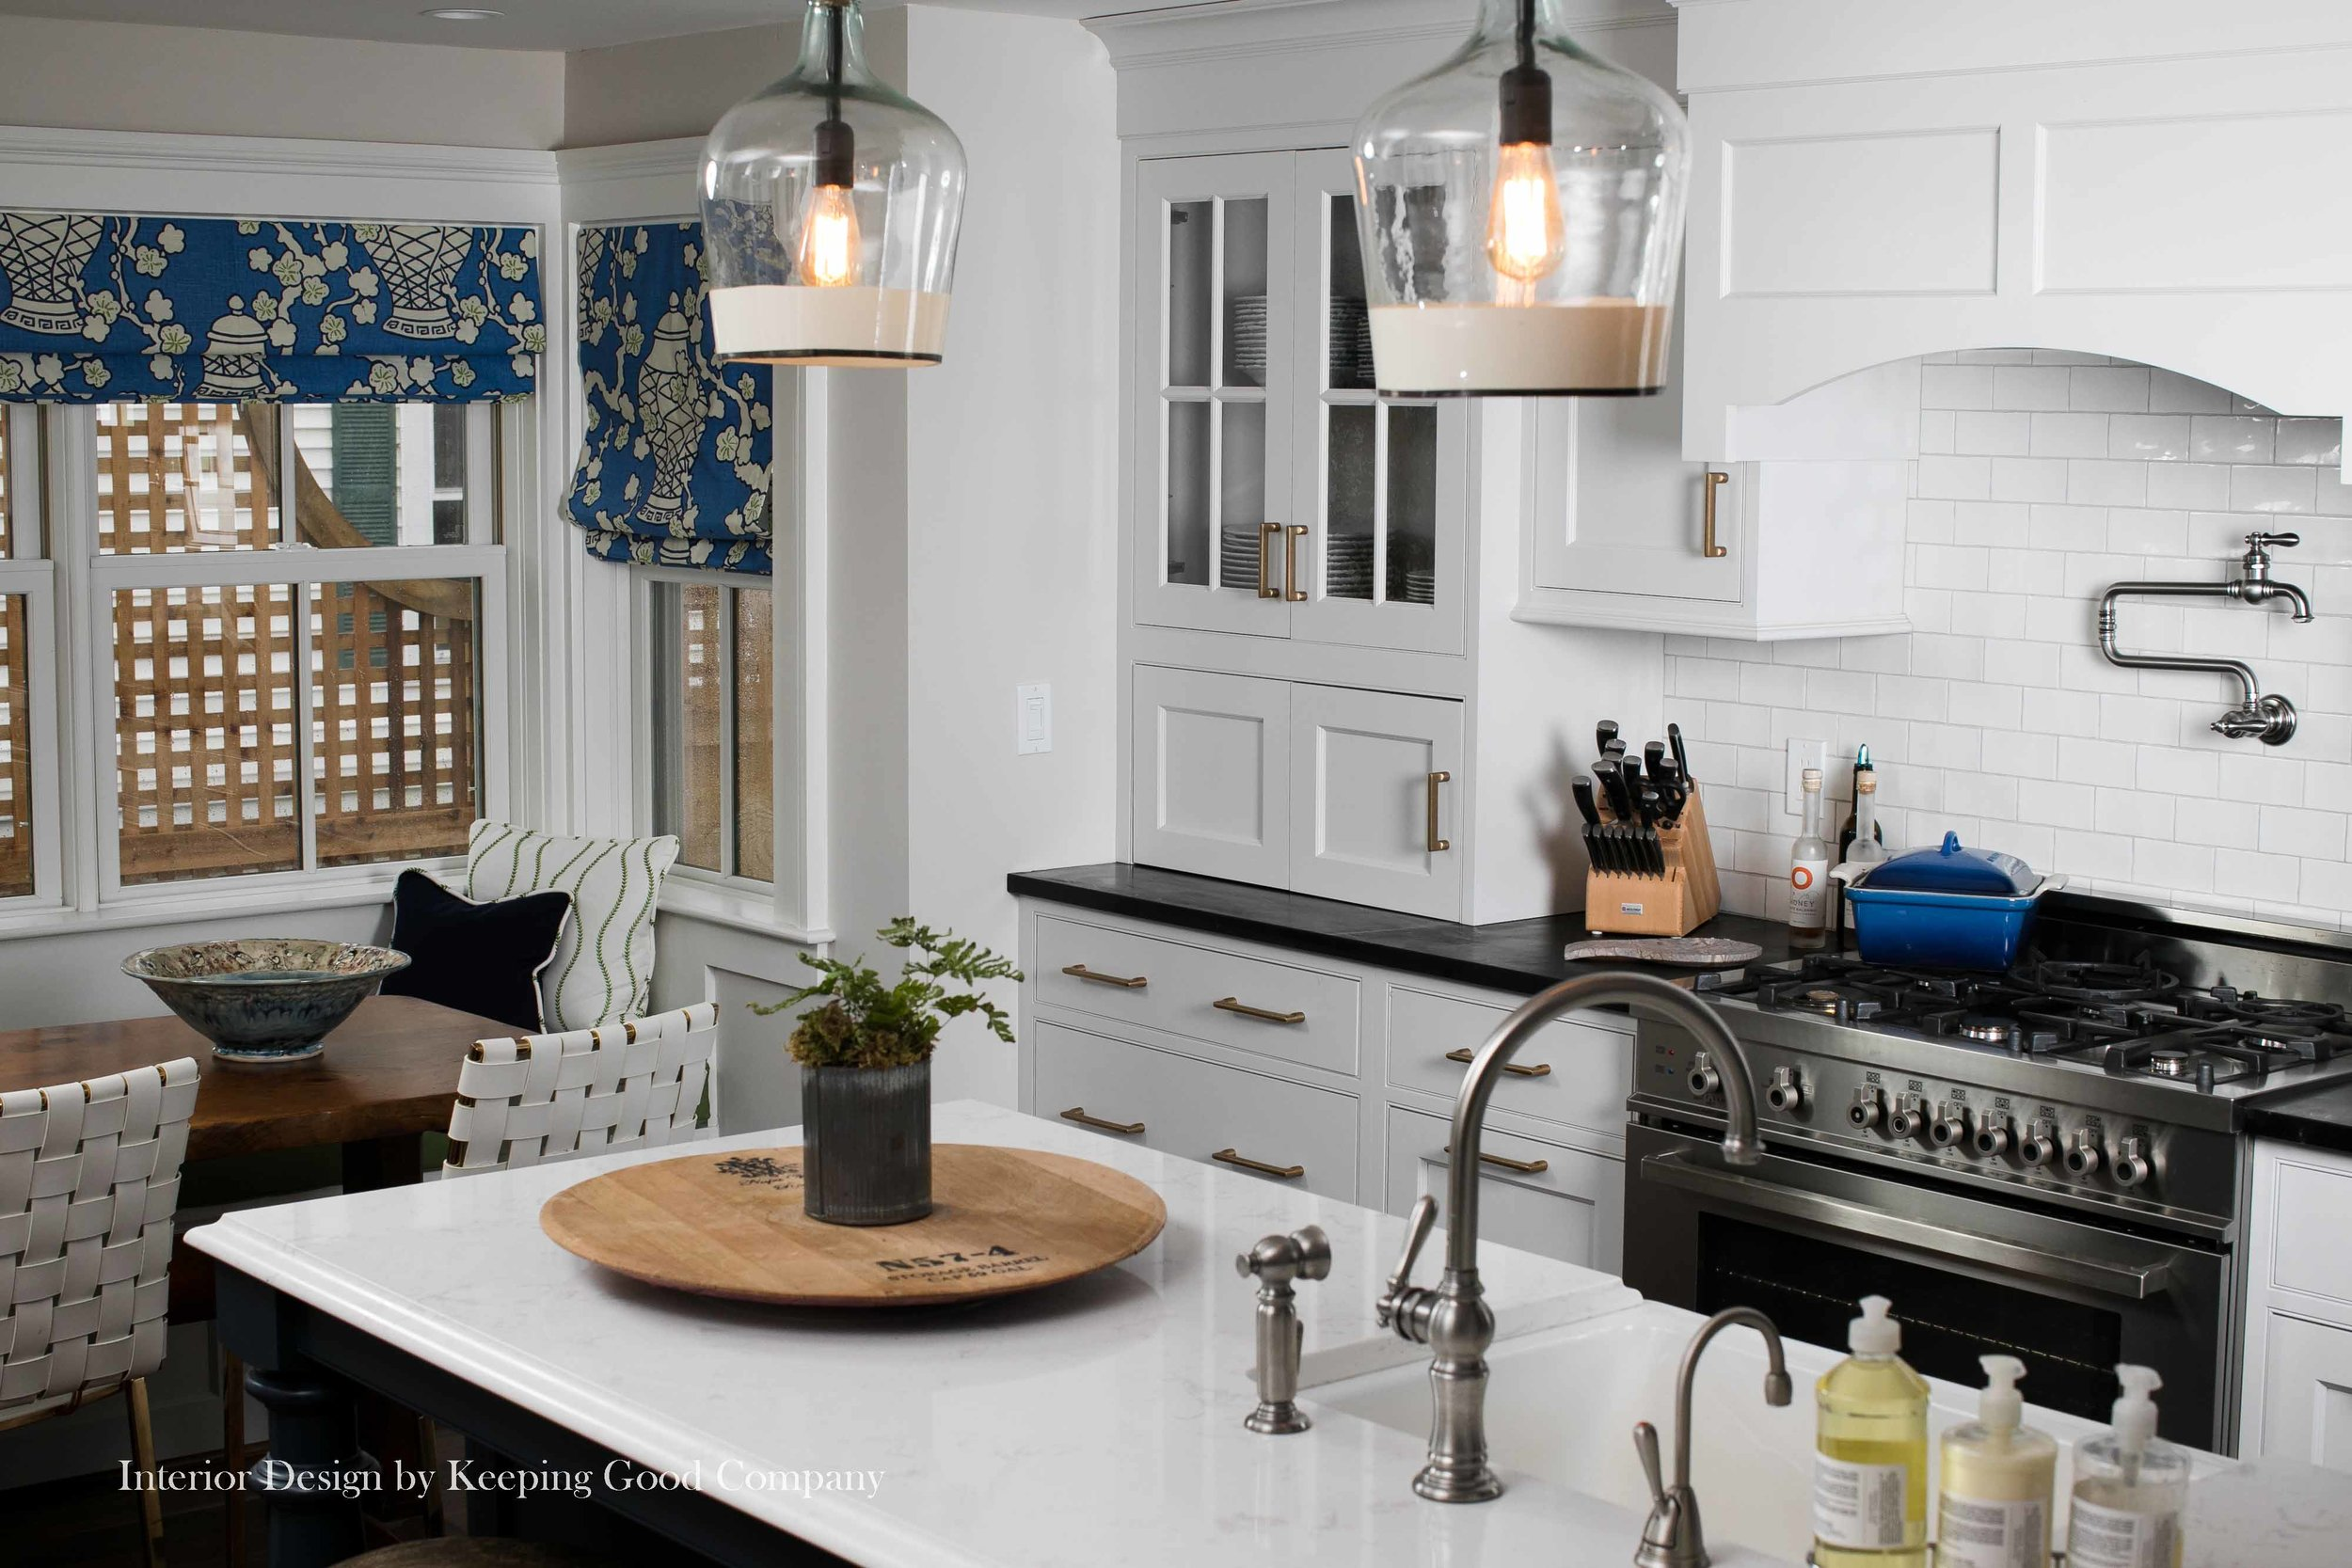 Plato Woodwork Prelude Cabinetry,Gray Mist Painted Cabinetry, Beaded Flush Style Cabinetry